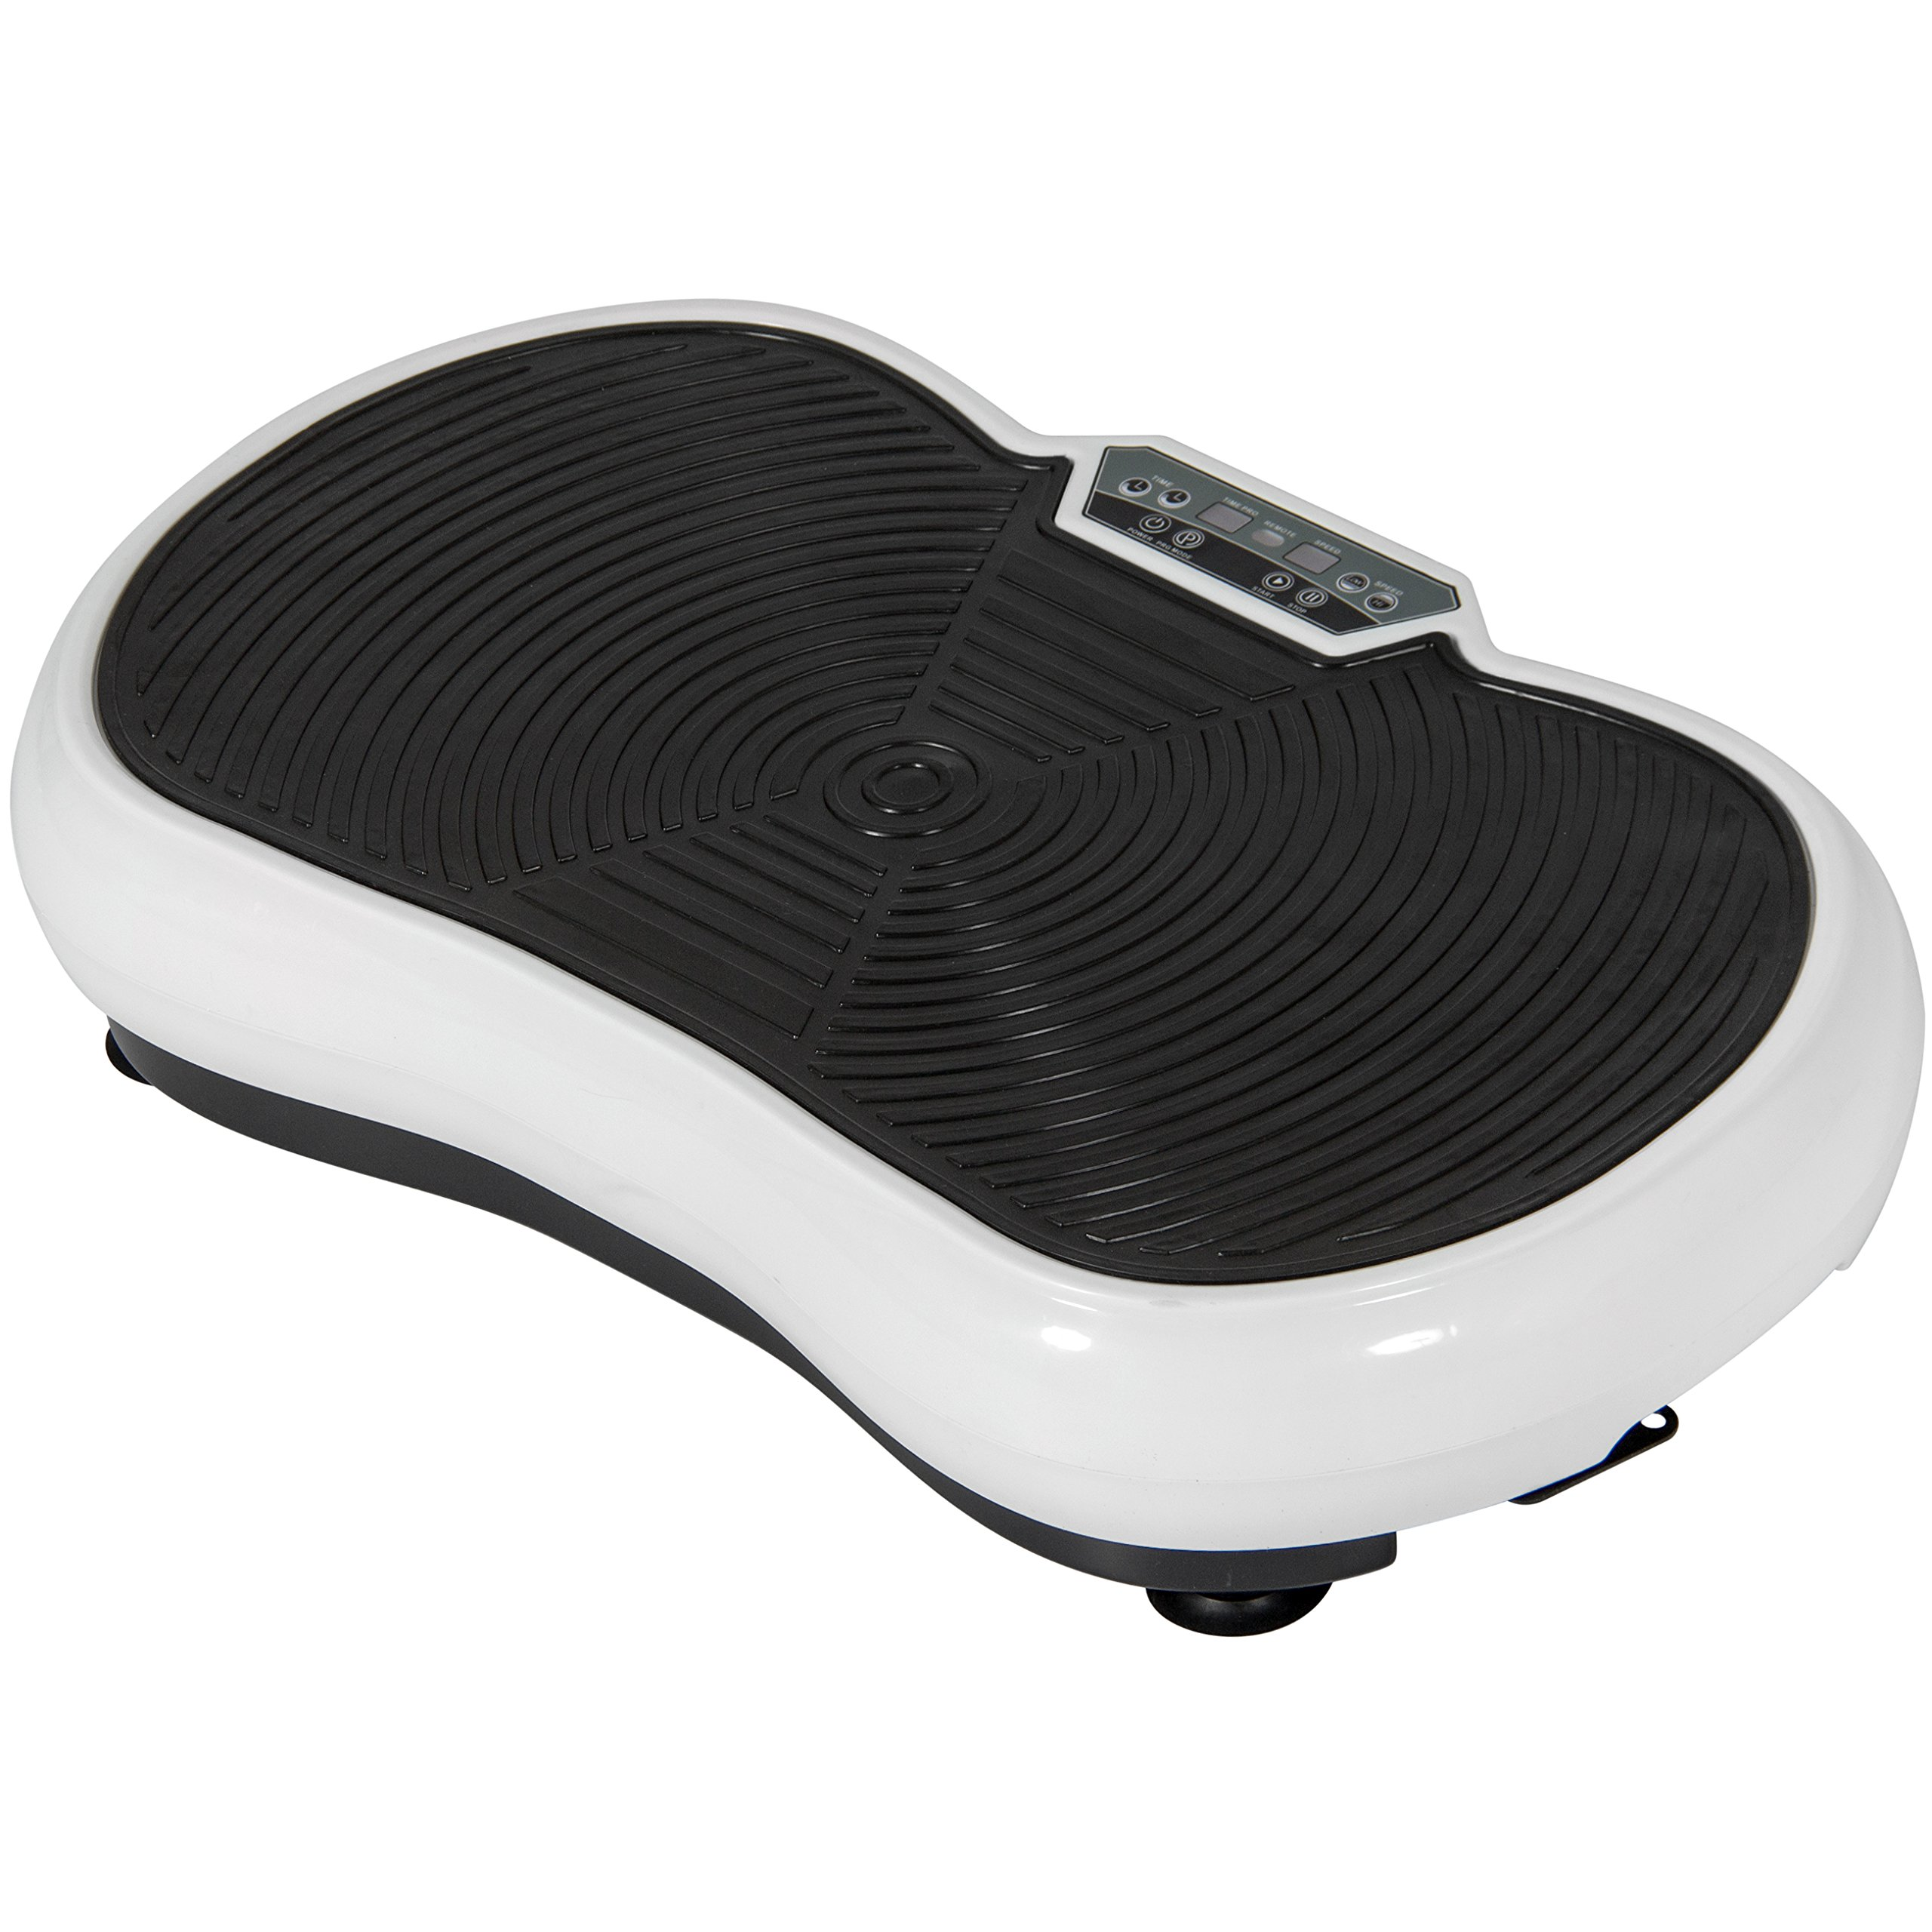 Best Choice Products Full Body Vibration Platform w/Remote Control and Resistance Bands for Blood Circulation, Muscle Strengthening - White by Best Choice Products (Image #3)